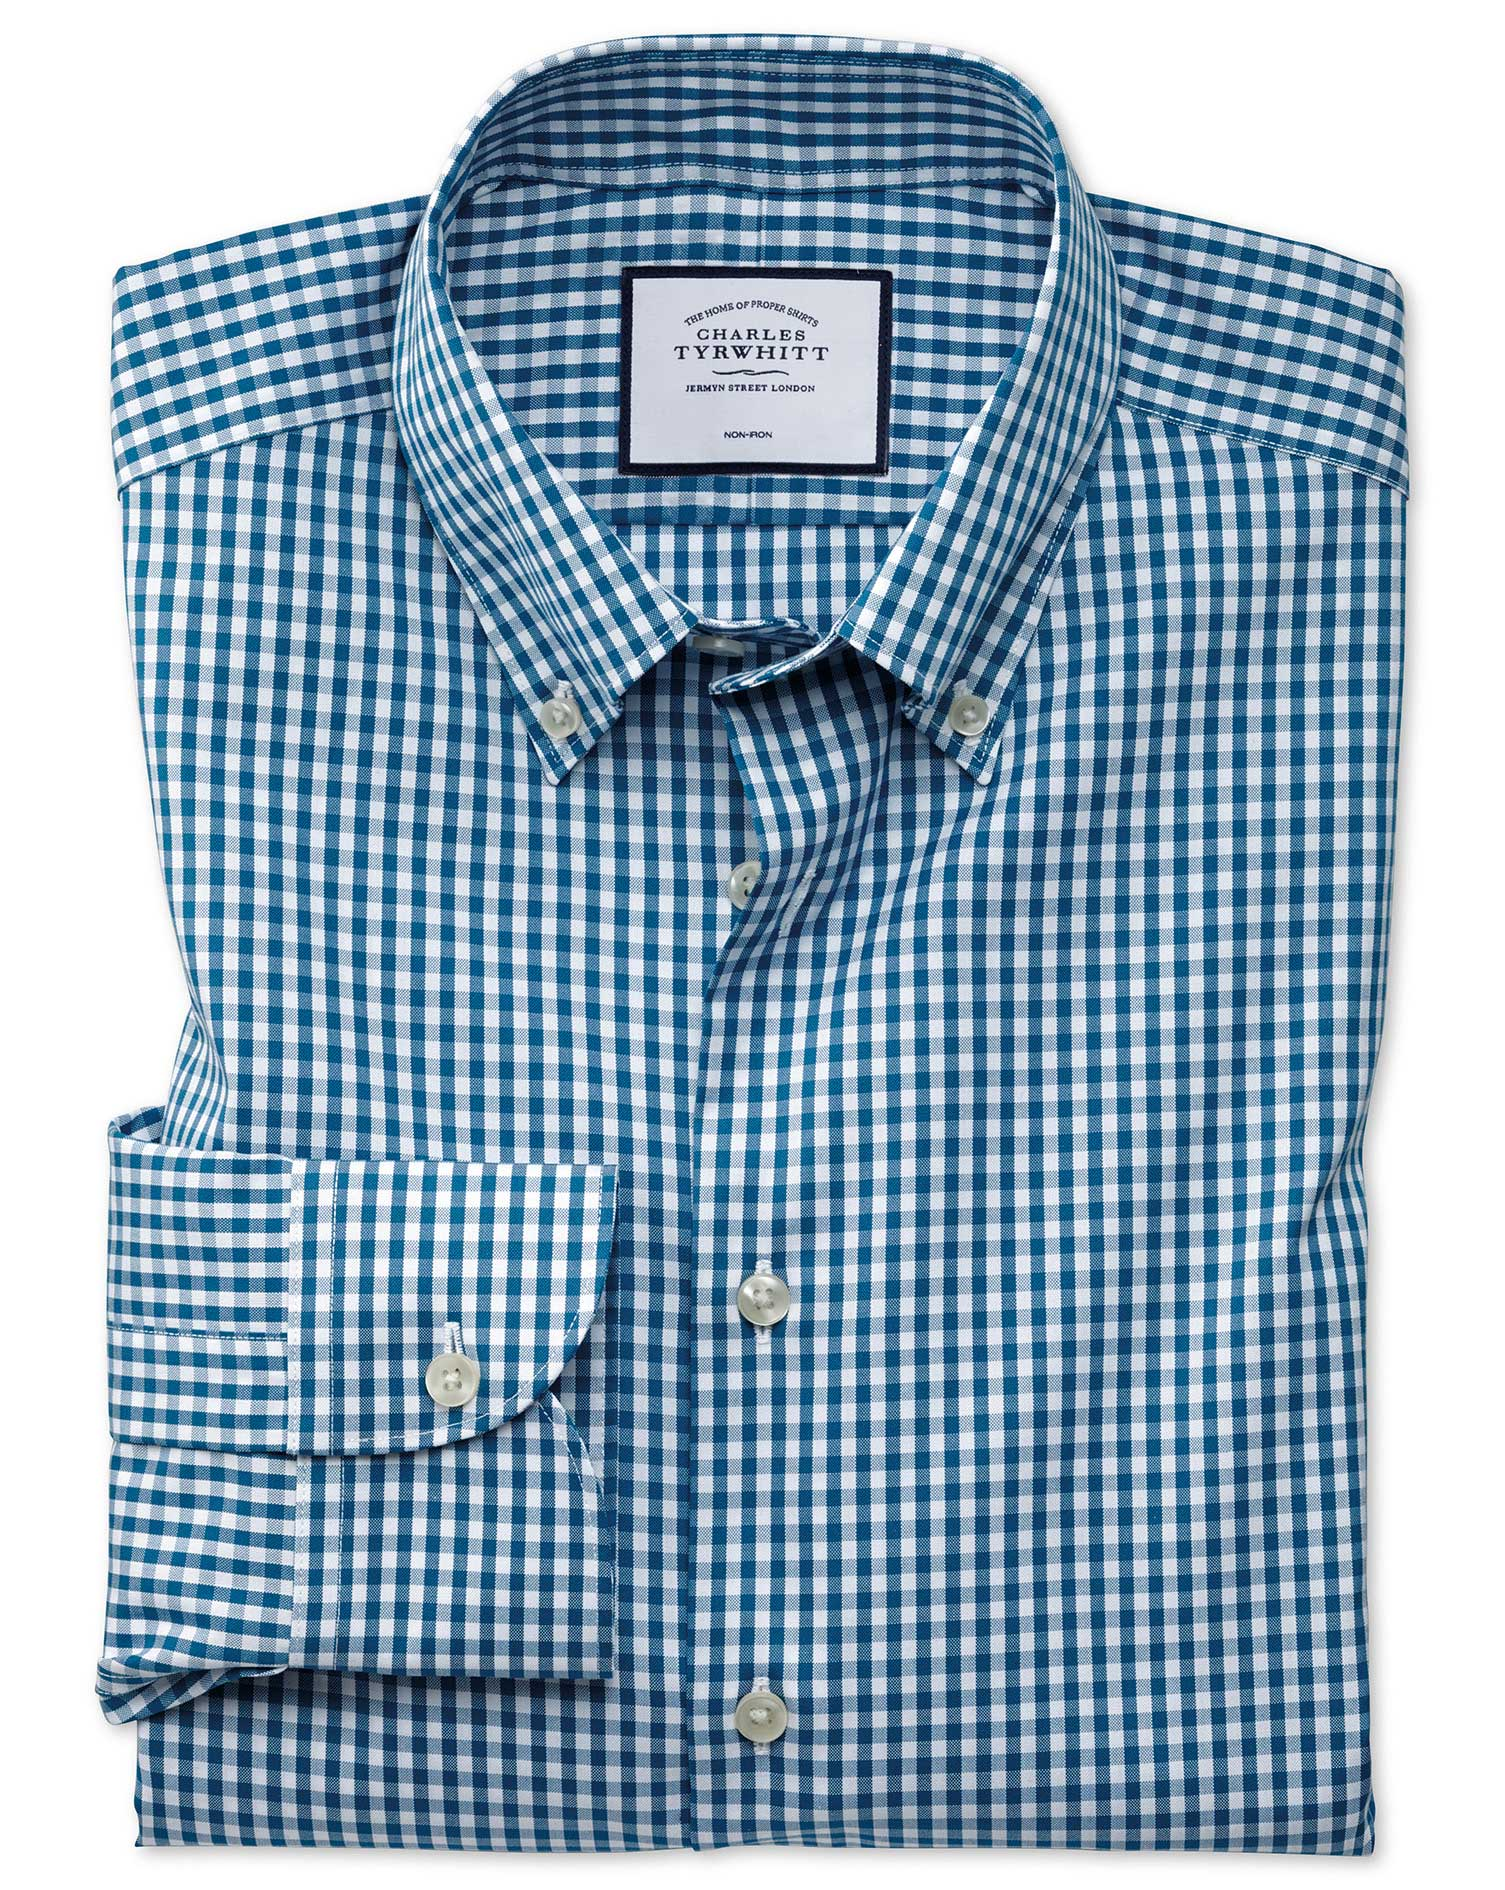 Extra Slim Fit Business Casual Non-Iron Button-Down Teal Check Cotton Formal Shirt Single Cuff Size